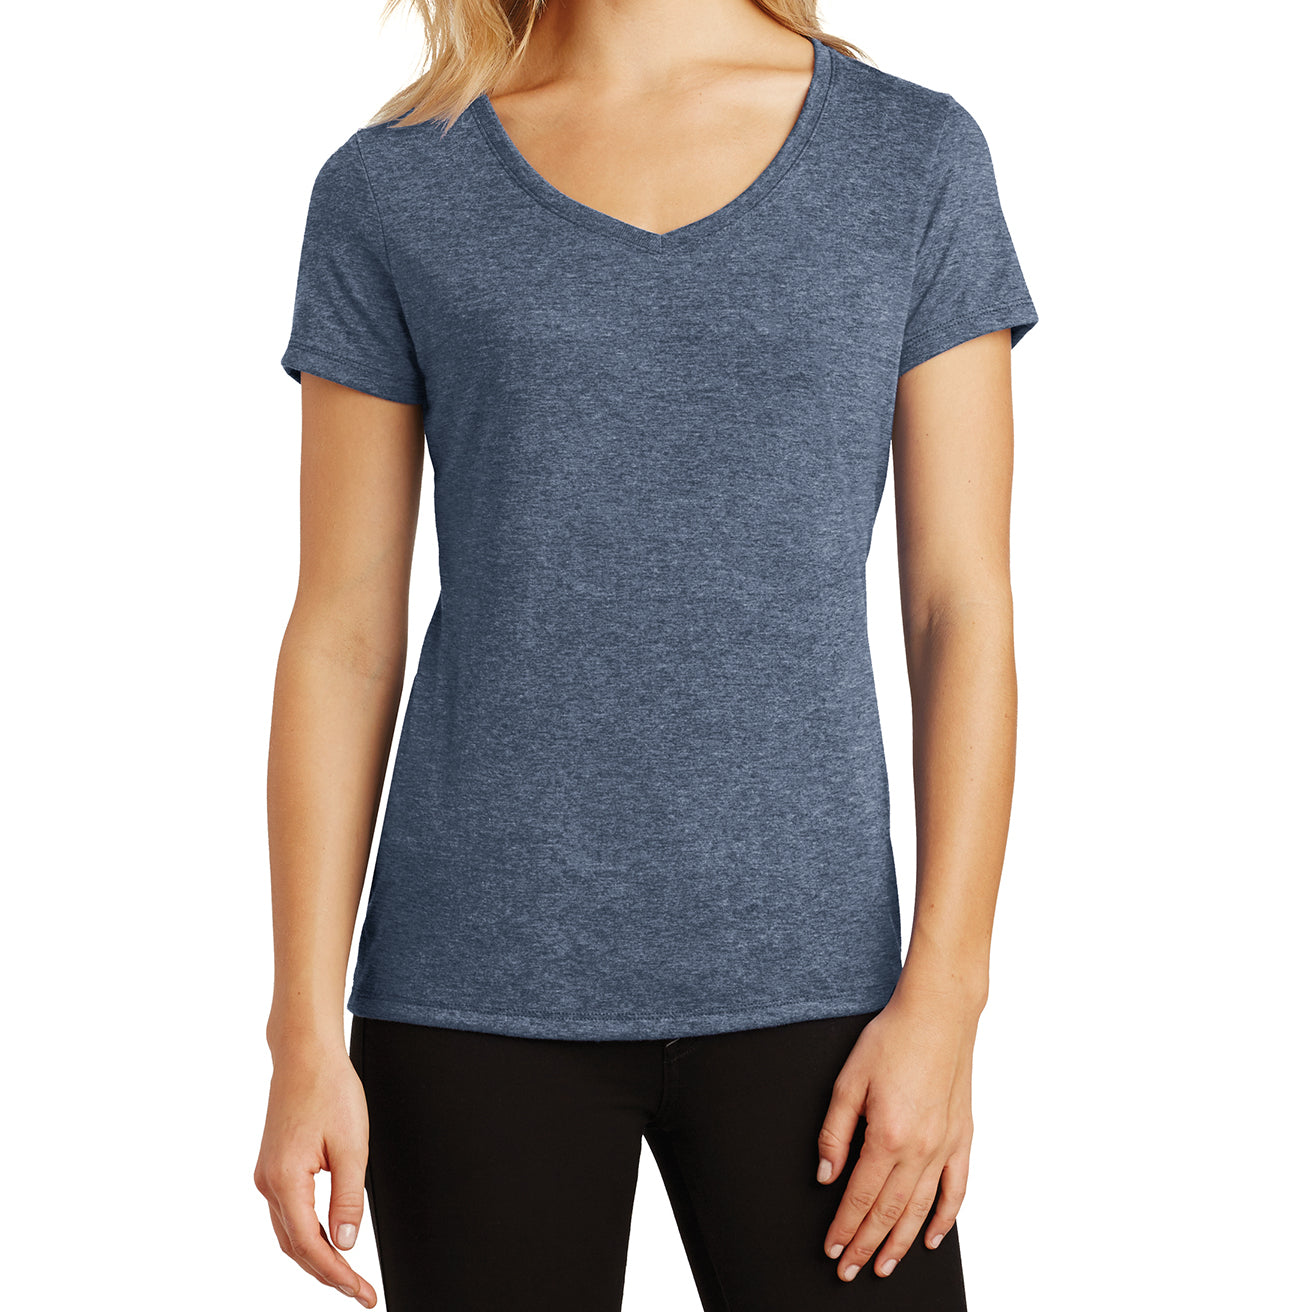 Women's Perfect Tri V-Neck Tee - Navy Frost - Front